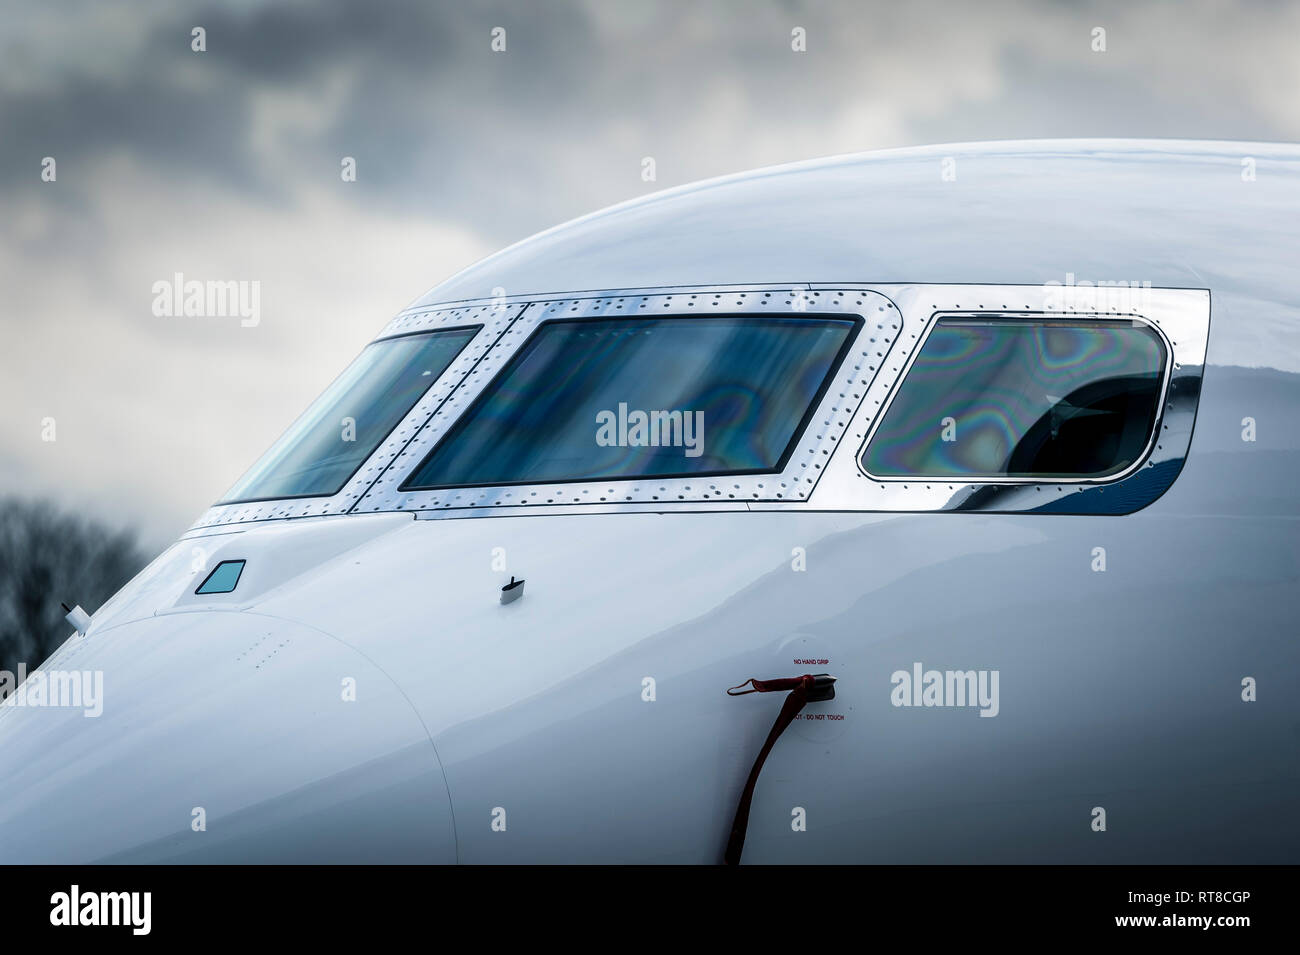 Close up of the front of a business jet aircraft at Luton airport, England. - Stock Image